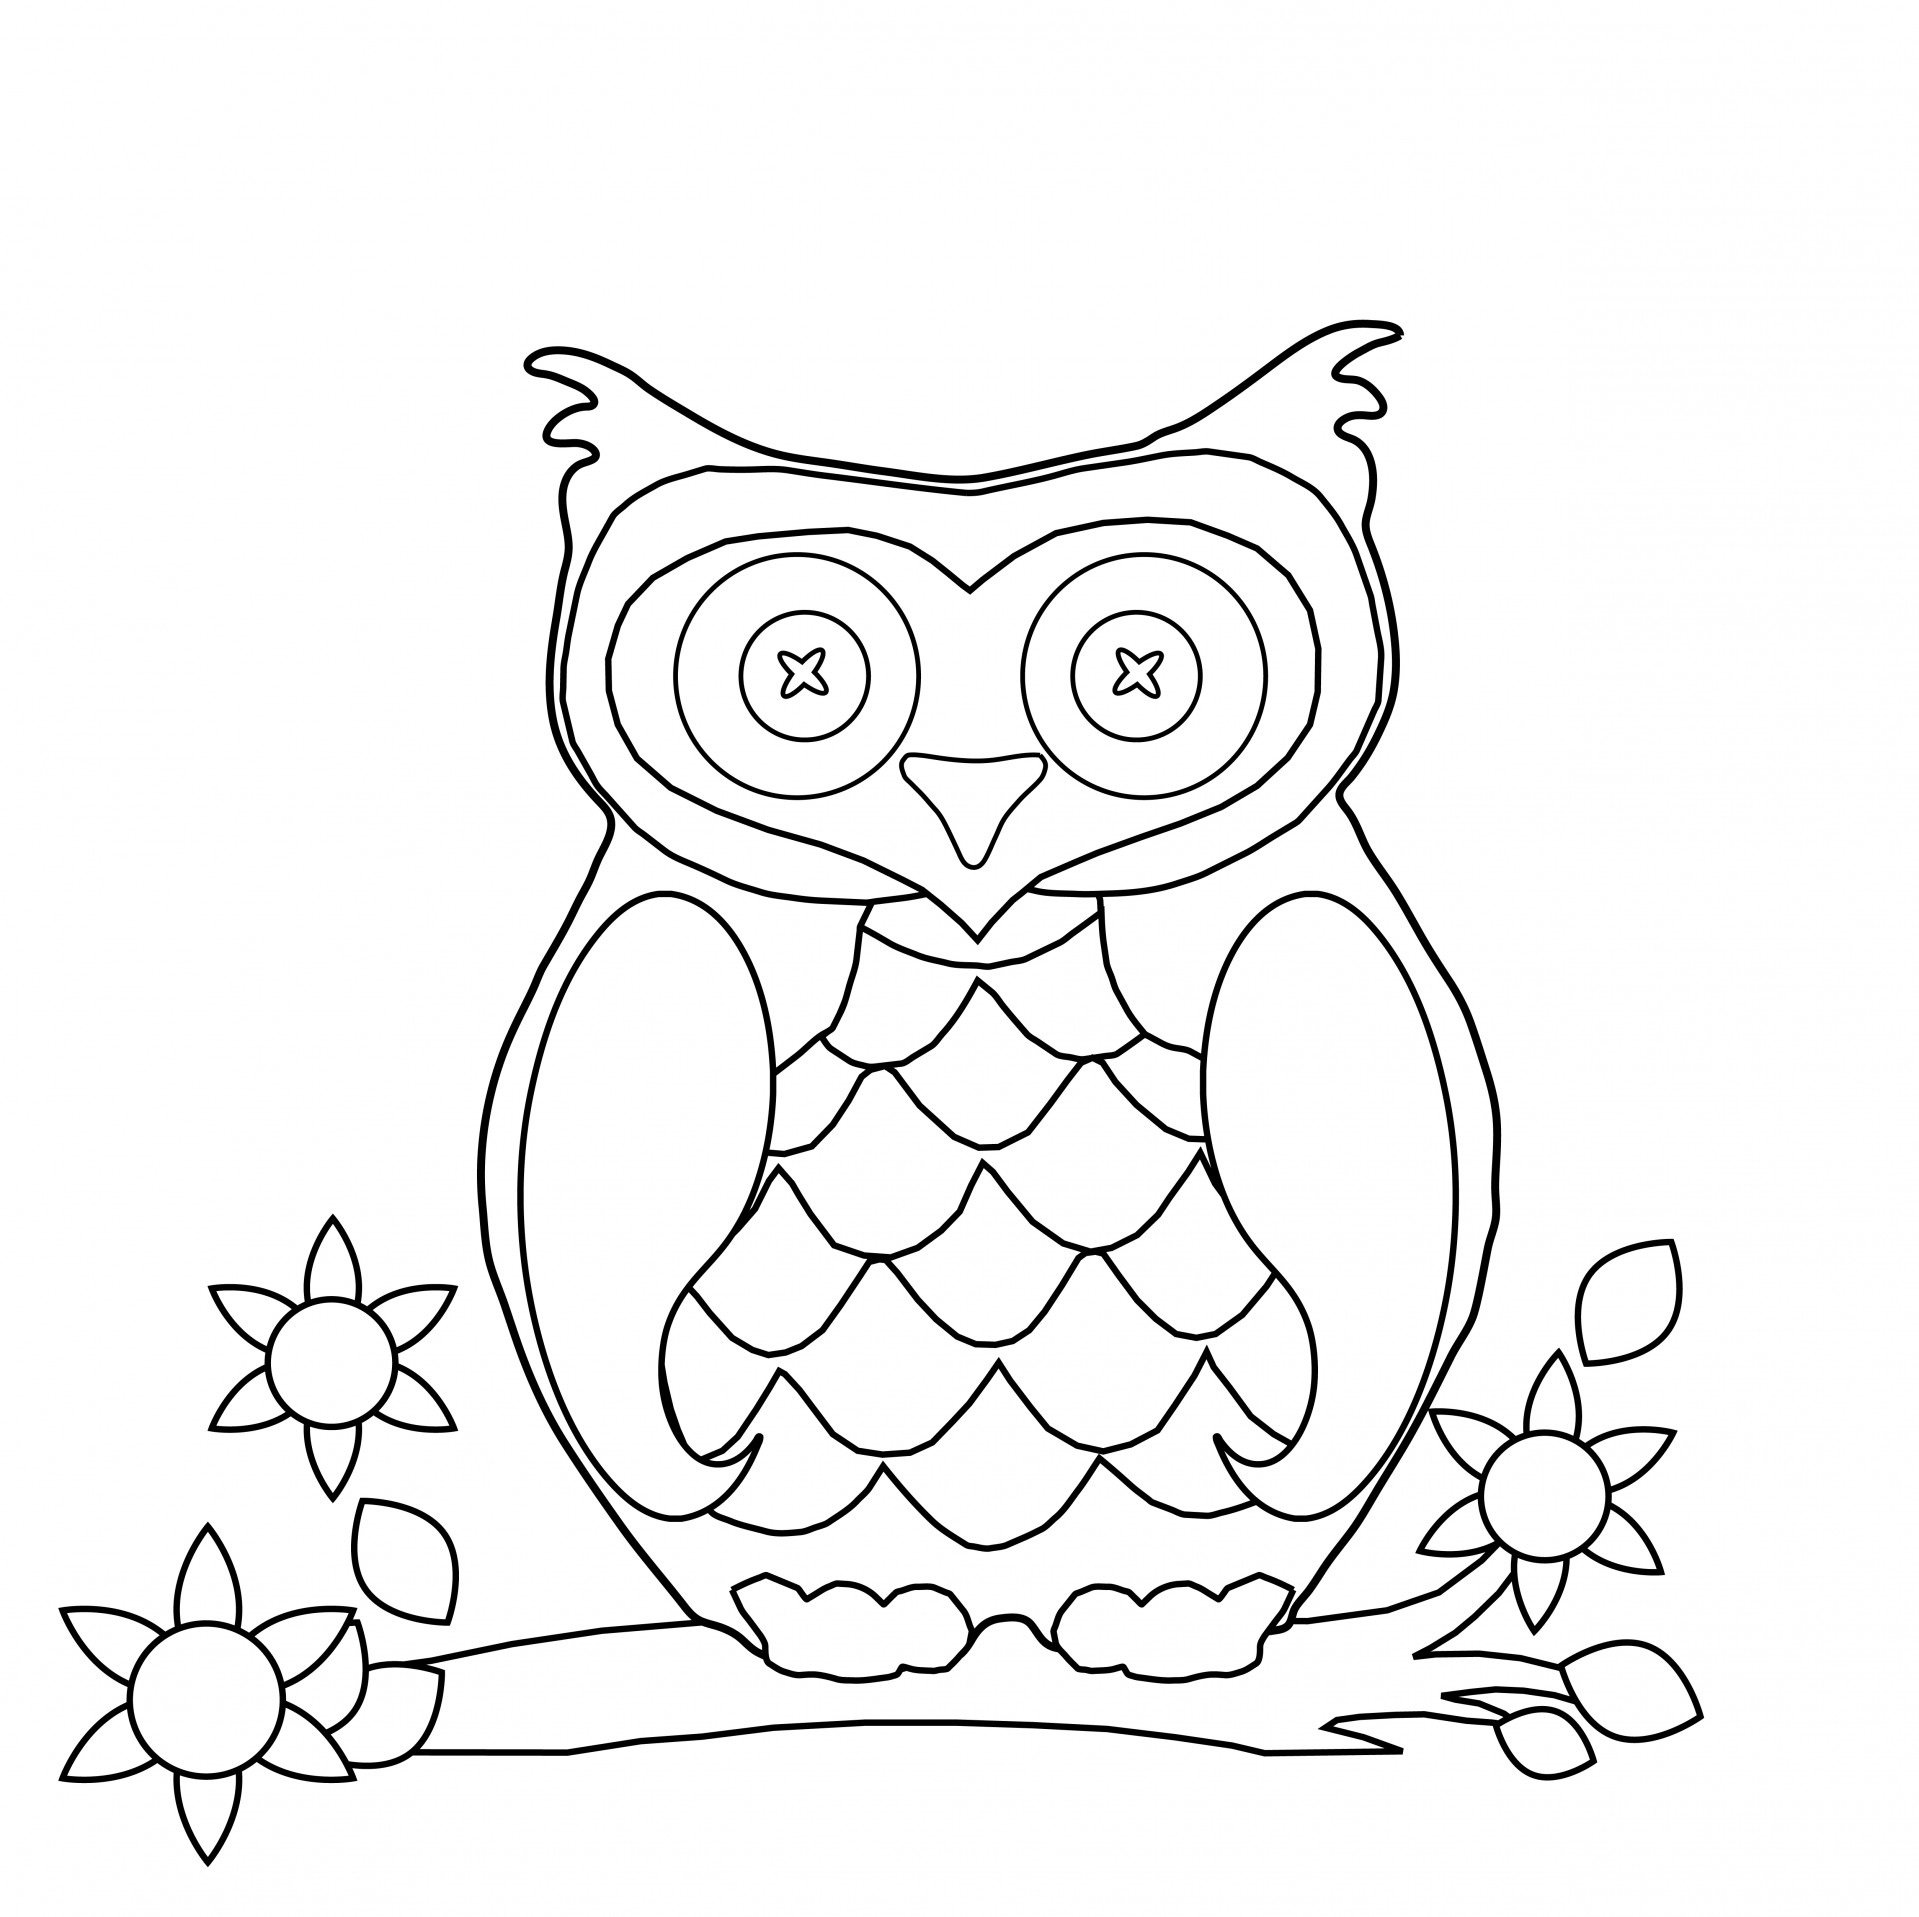 free pictures to print free printable zebra coloring pages for kids print pictures free to